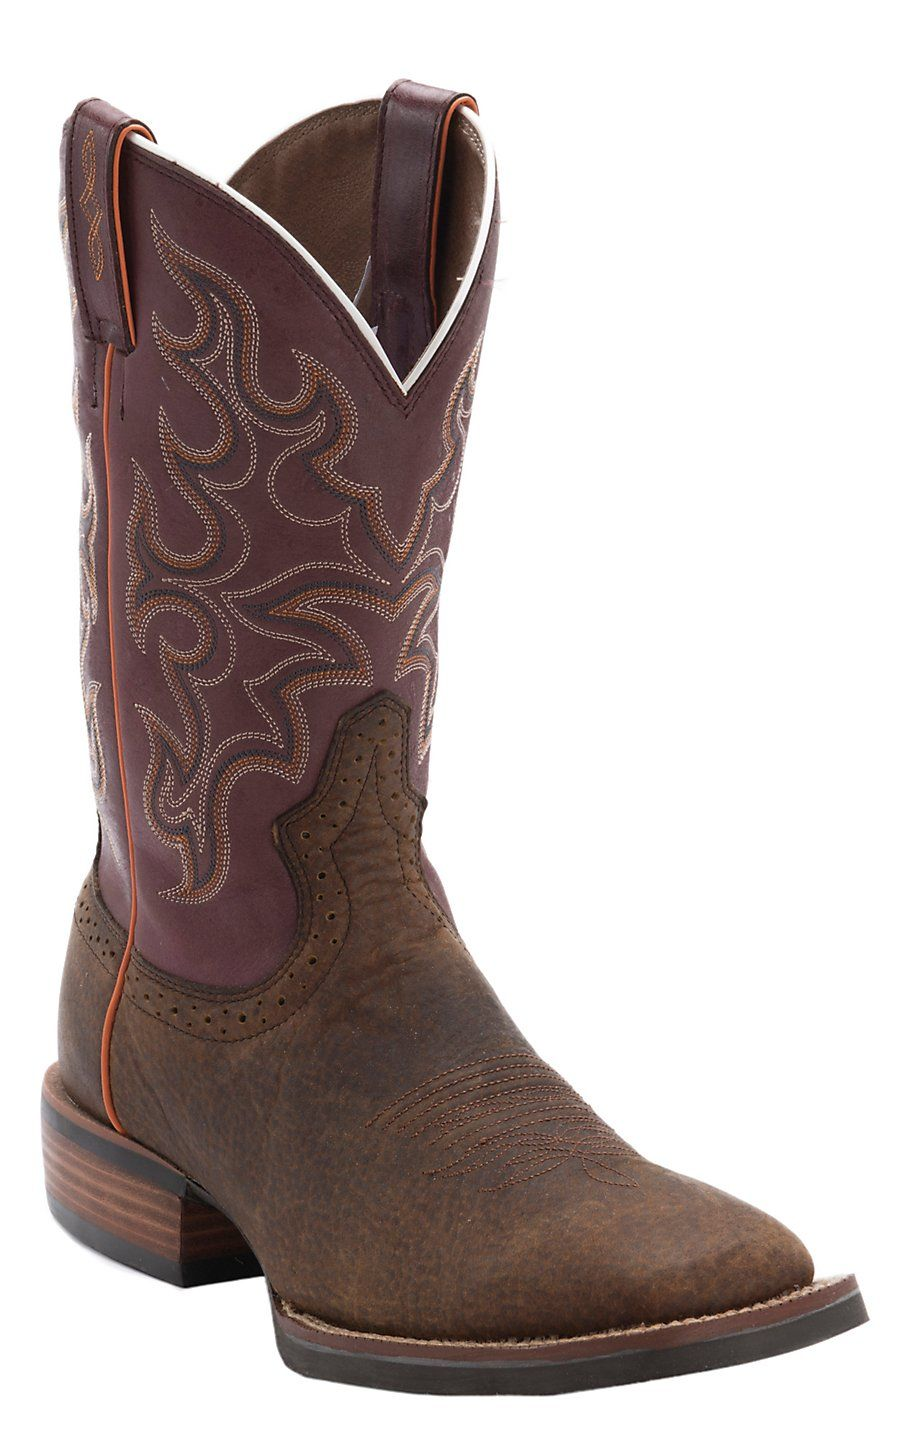 Justin 174 Men S Silver Collection Copper Buffalo With Maroon Top Double Welt Square Toe